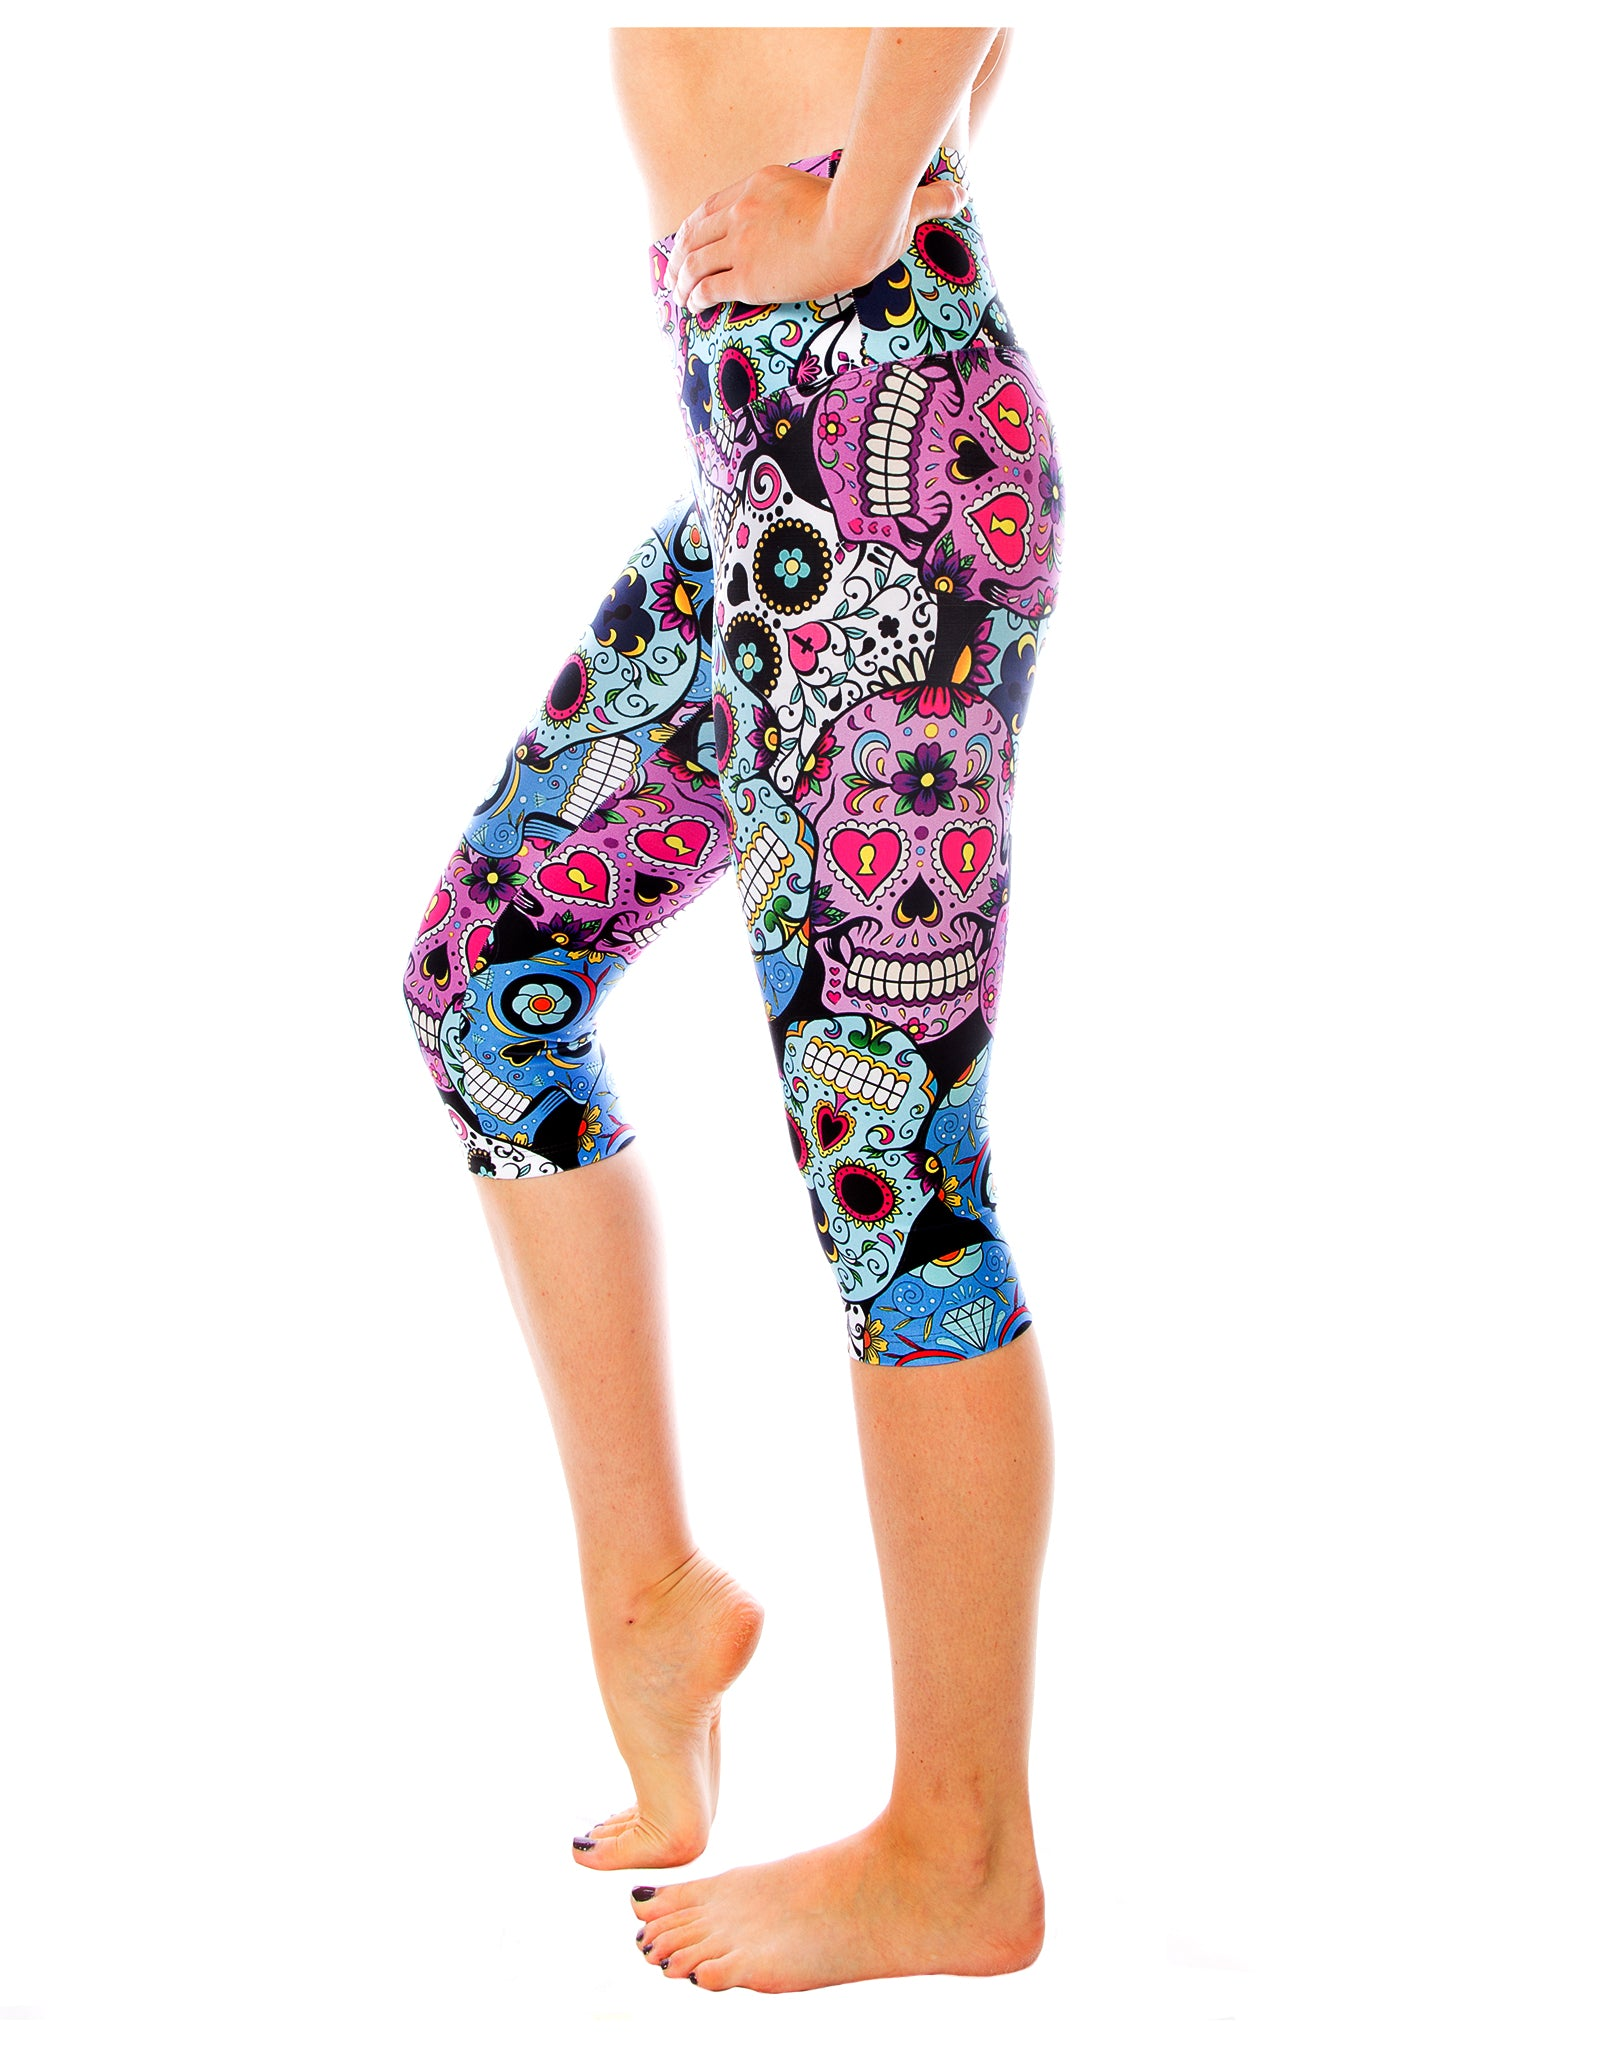 Cinco de Mayo Capri Leggings and Yoga Pants | Compression & Comfortable Capris | Activewear for Gym, Yoga, Pilates